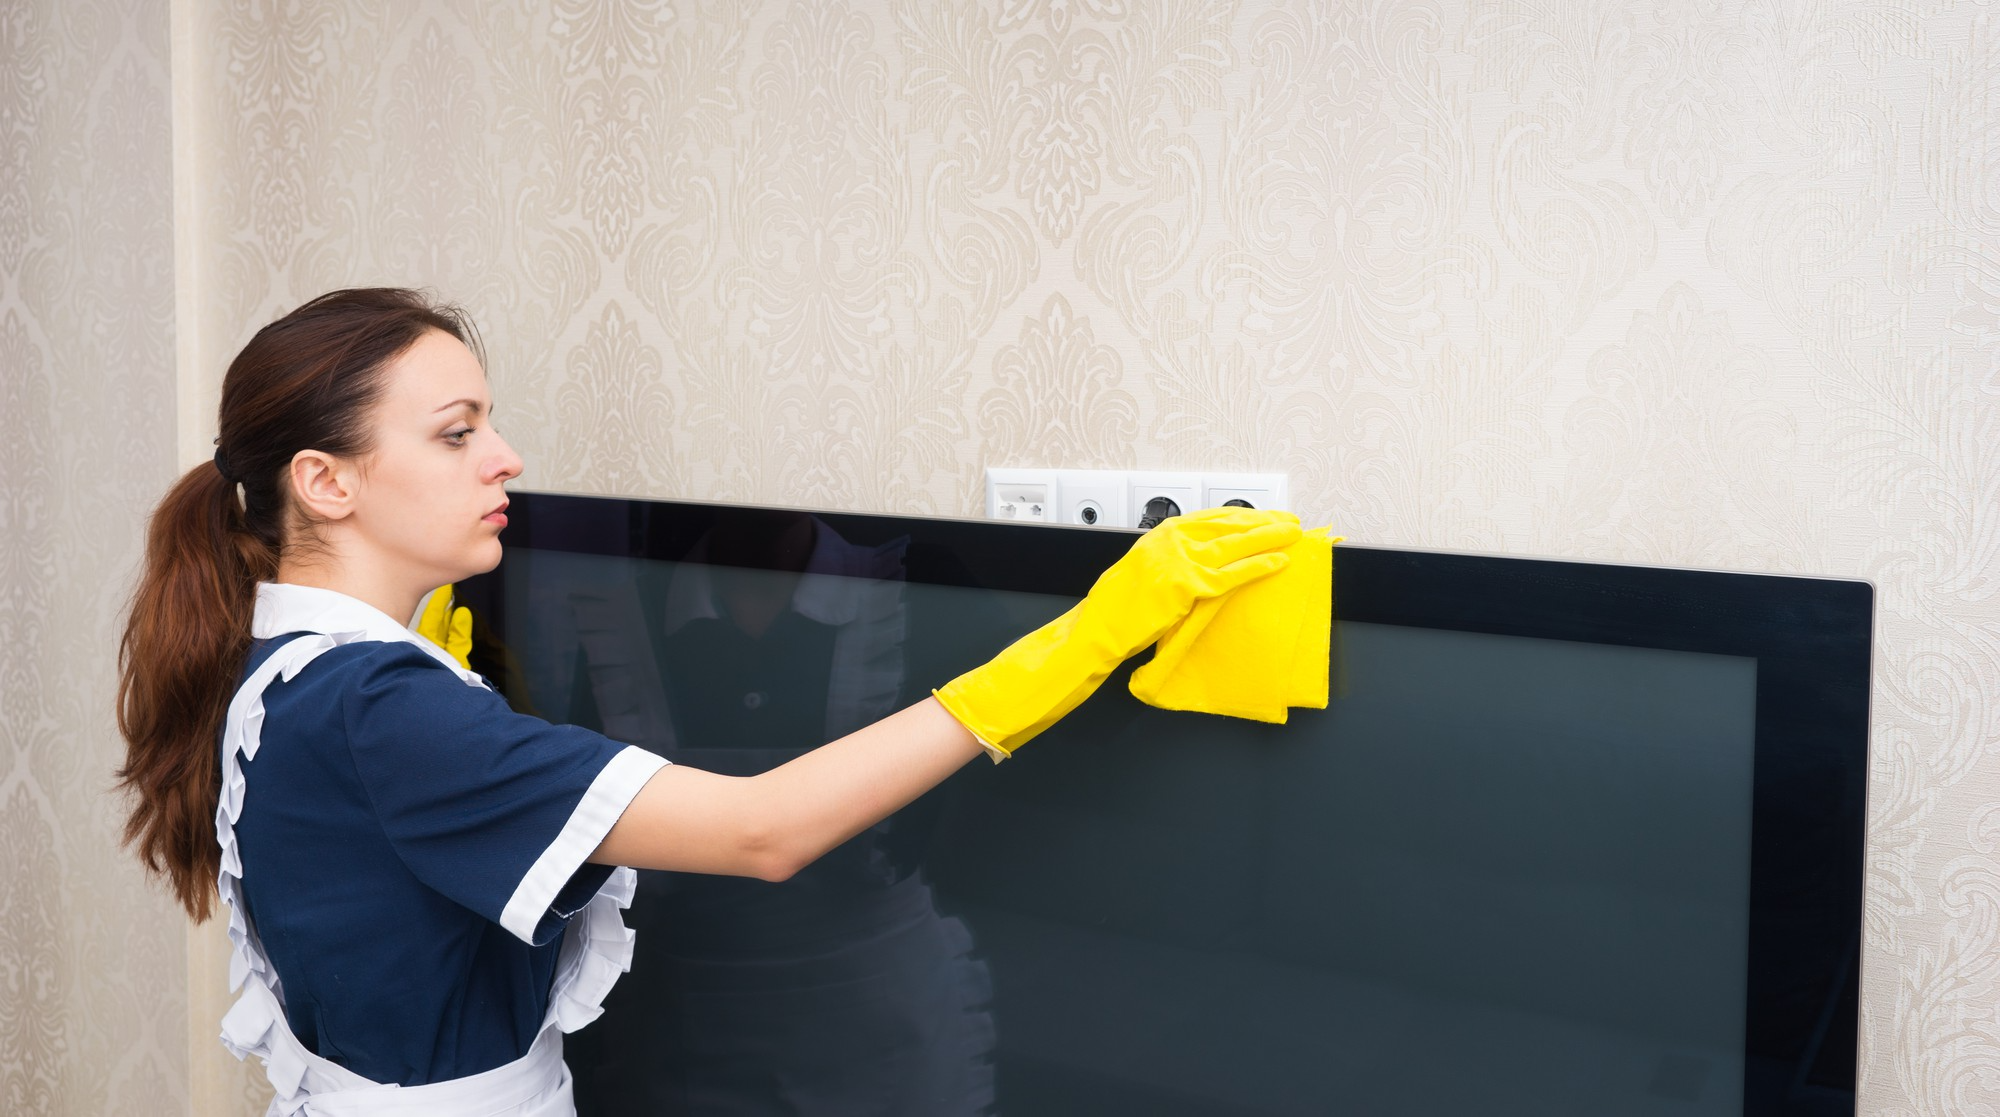 Professional cleaner wiping flat screen monitor